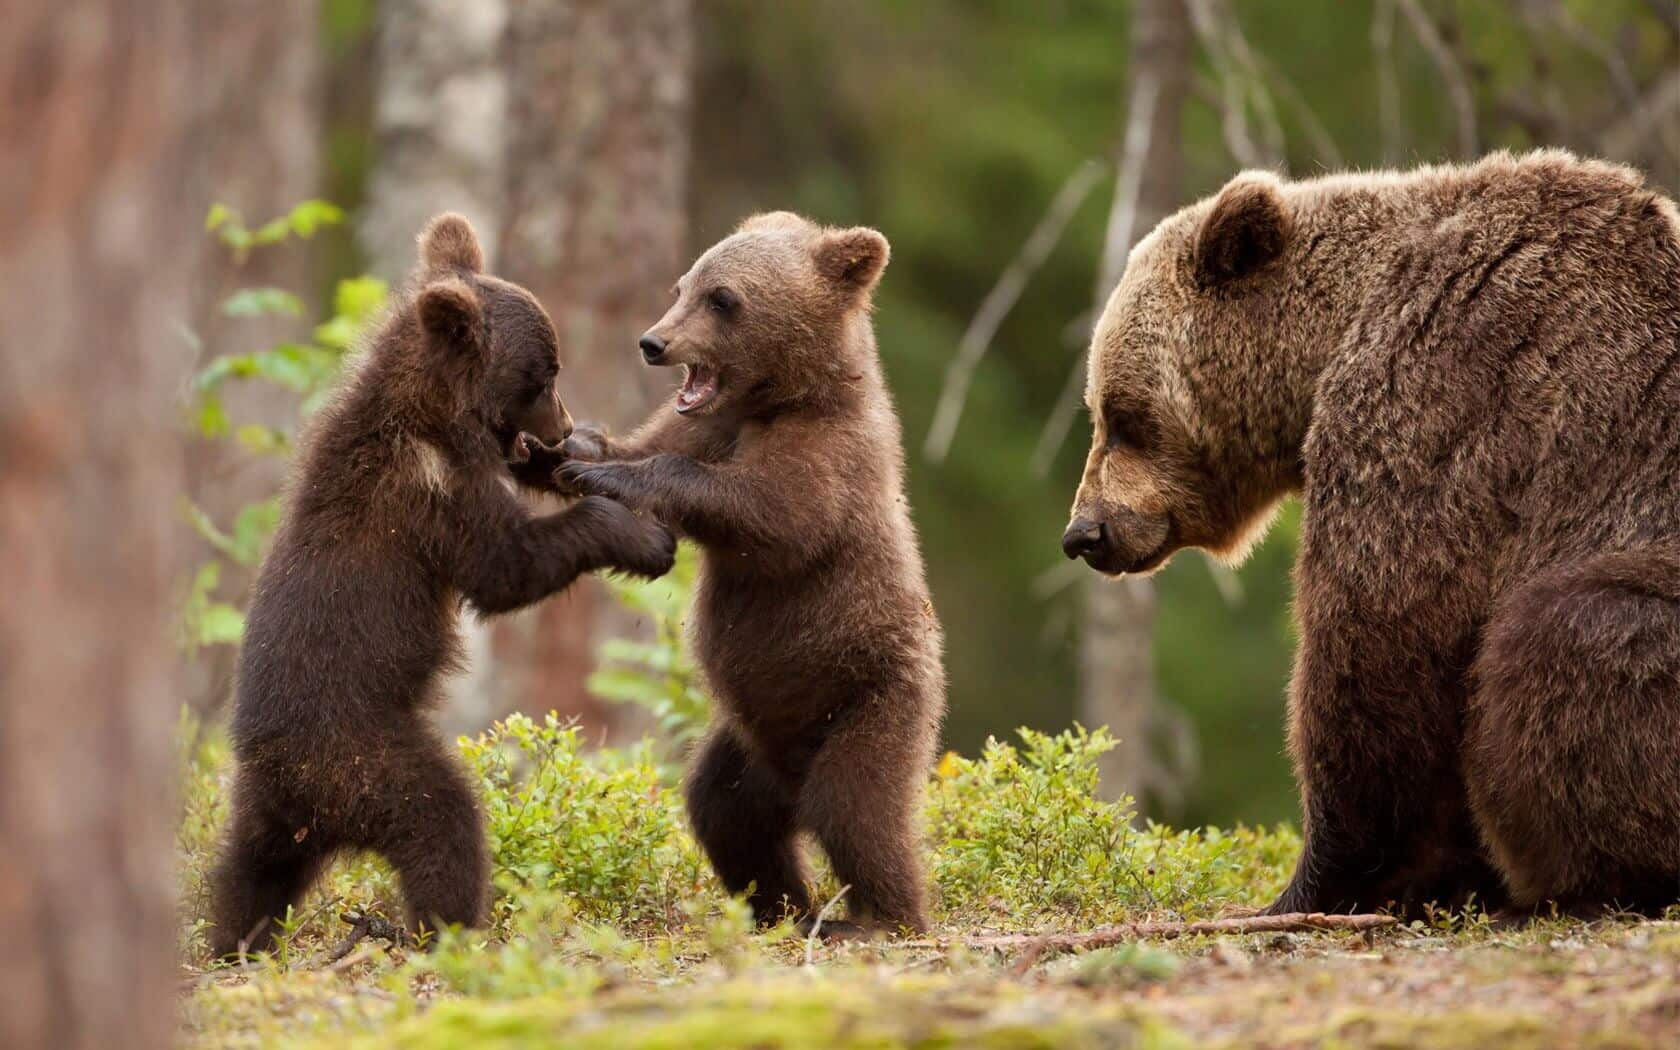 Bear cubs playing while their mother looks on.